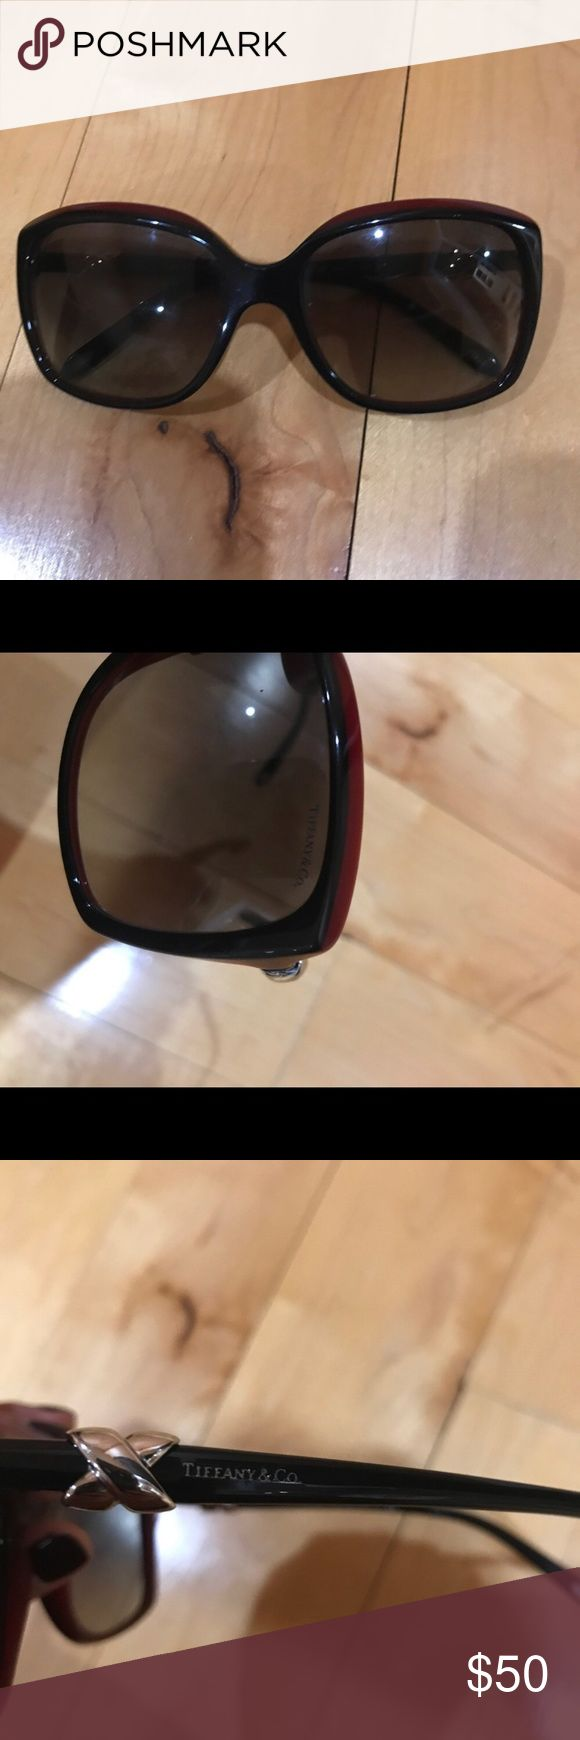 Tiffany sunglasses Worn, a few scratches on the lens. Doesn't come with case. Tiffany & Co. Accessories Sunglasses